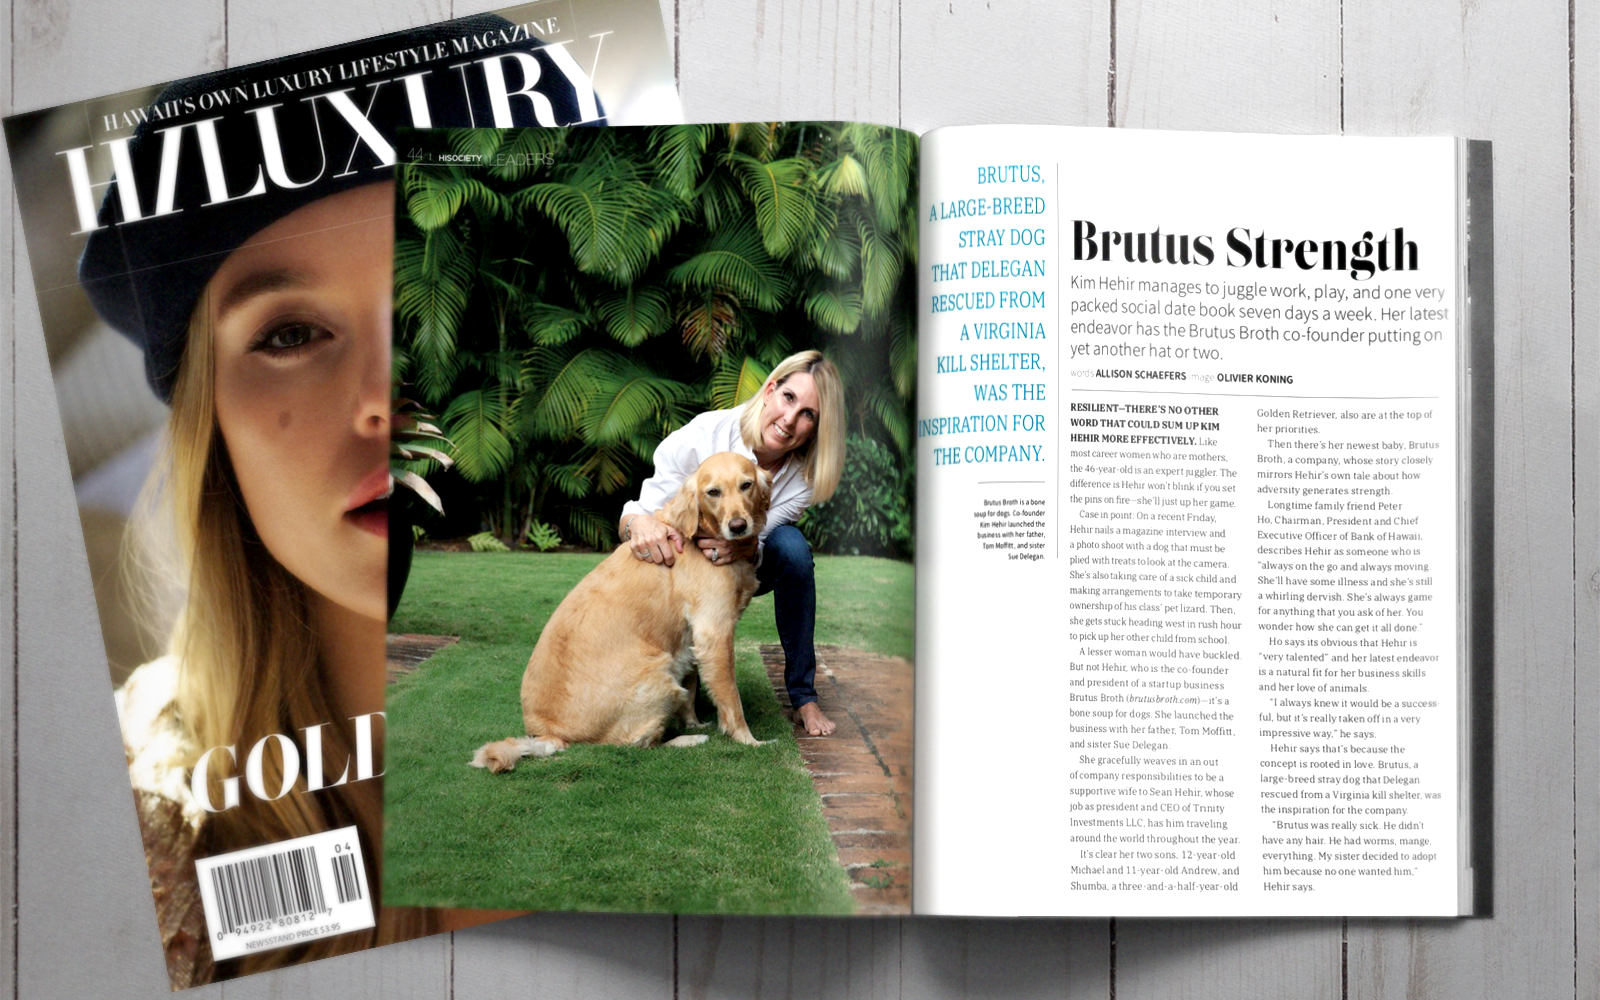 Hawaii Luxury Magazine follows Brutus strength